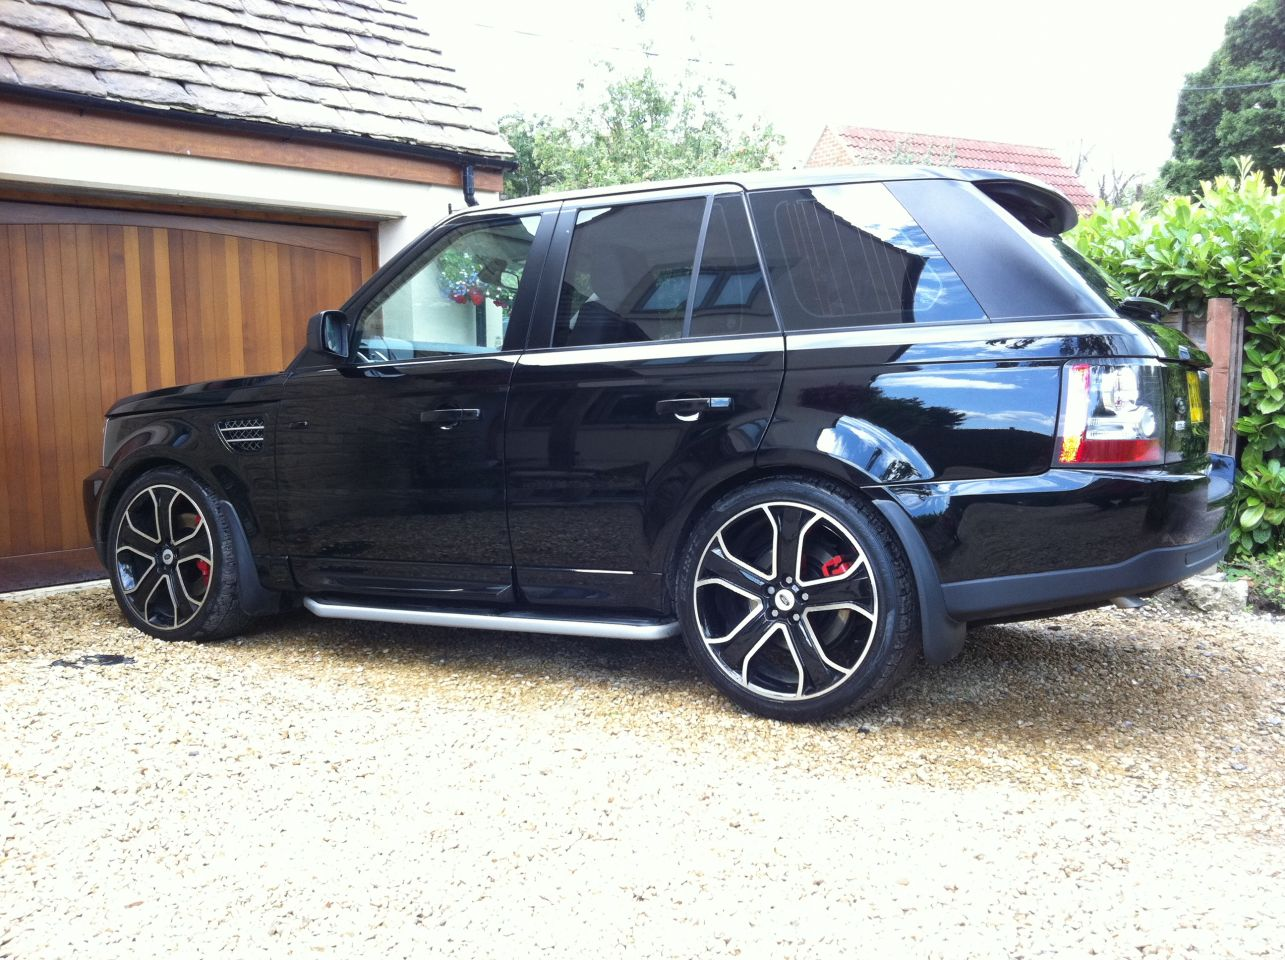 Rrsport Co Uk View Topic Anyone Fitted Mudflaps All Around